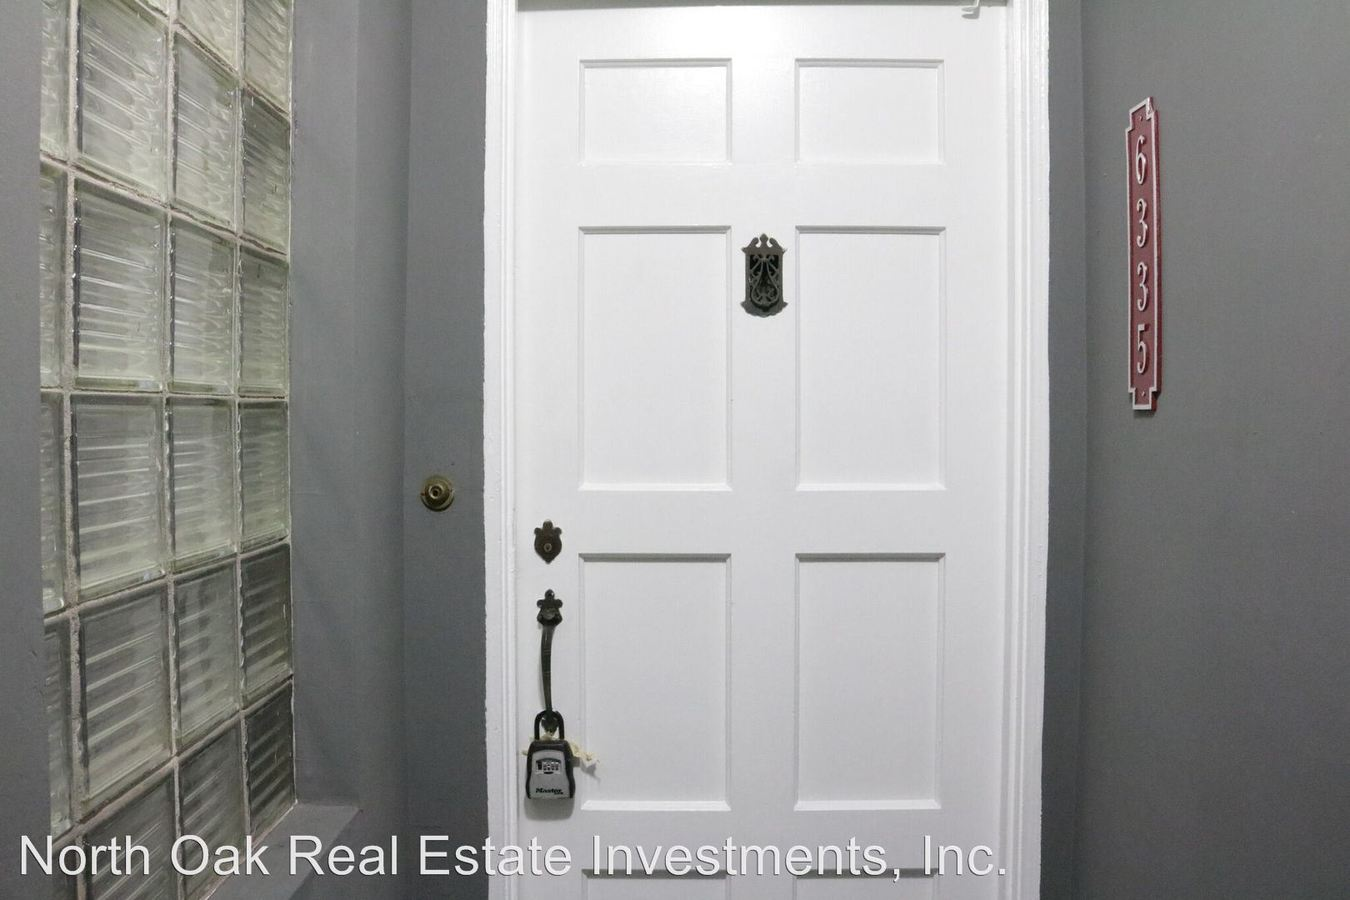 2 Bedrooms 1 Bathroom Apartment for rent at 6335, 6335 1/2, 6337 & 6337 1/2 Orange St. in Los Angeles, CA